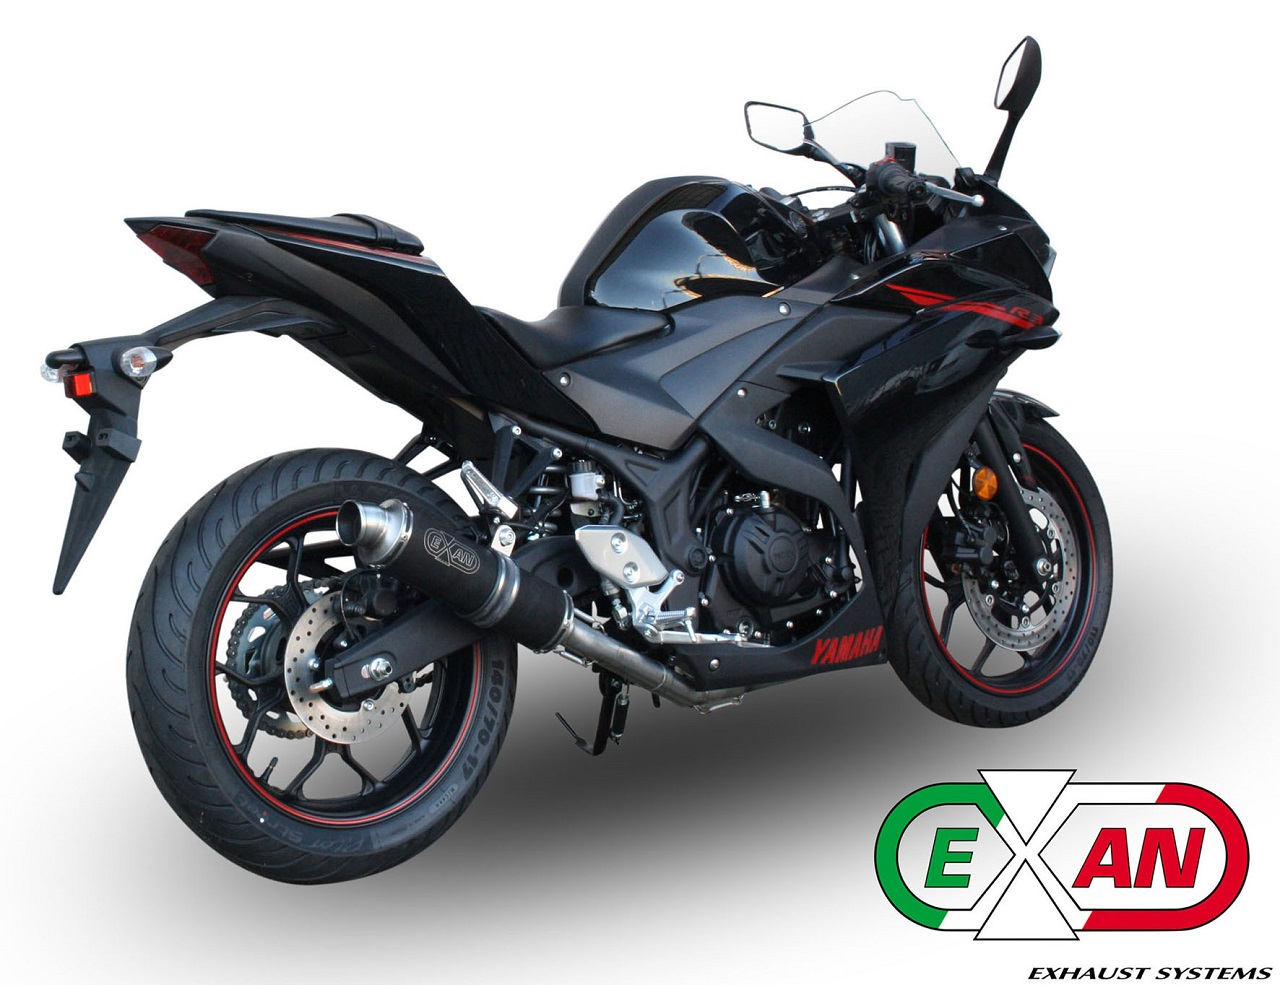 yamaha yzf-r3: in arrivo due nuove proposte da exan